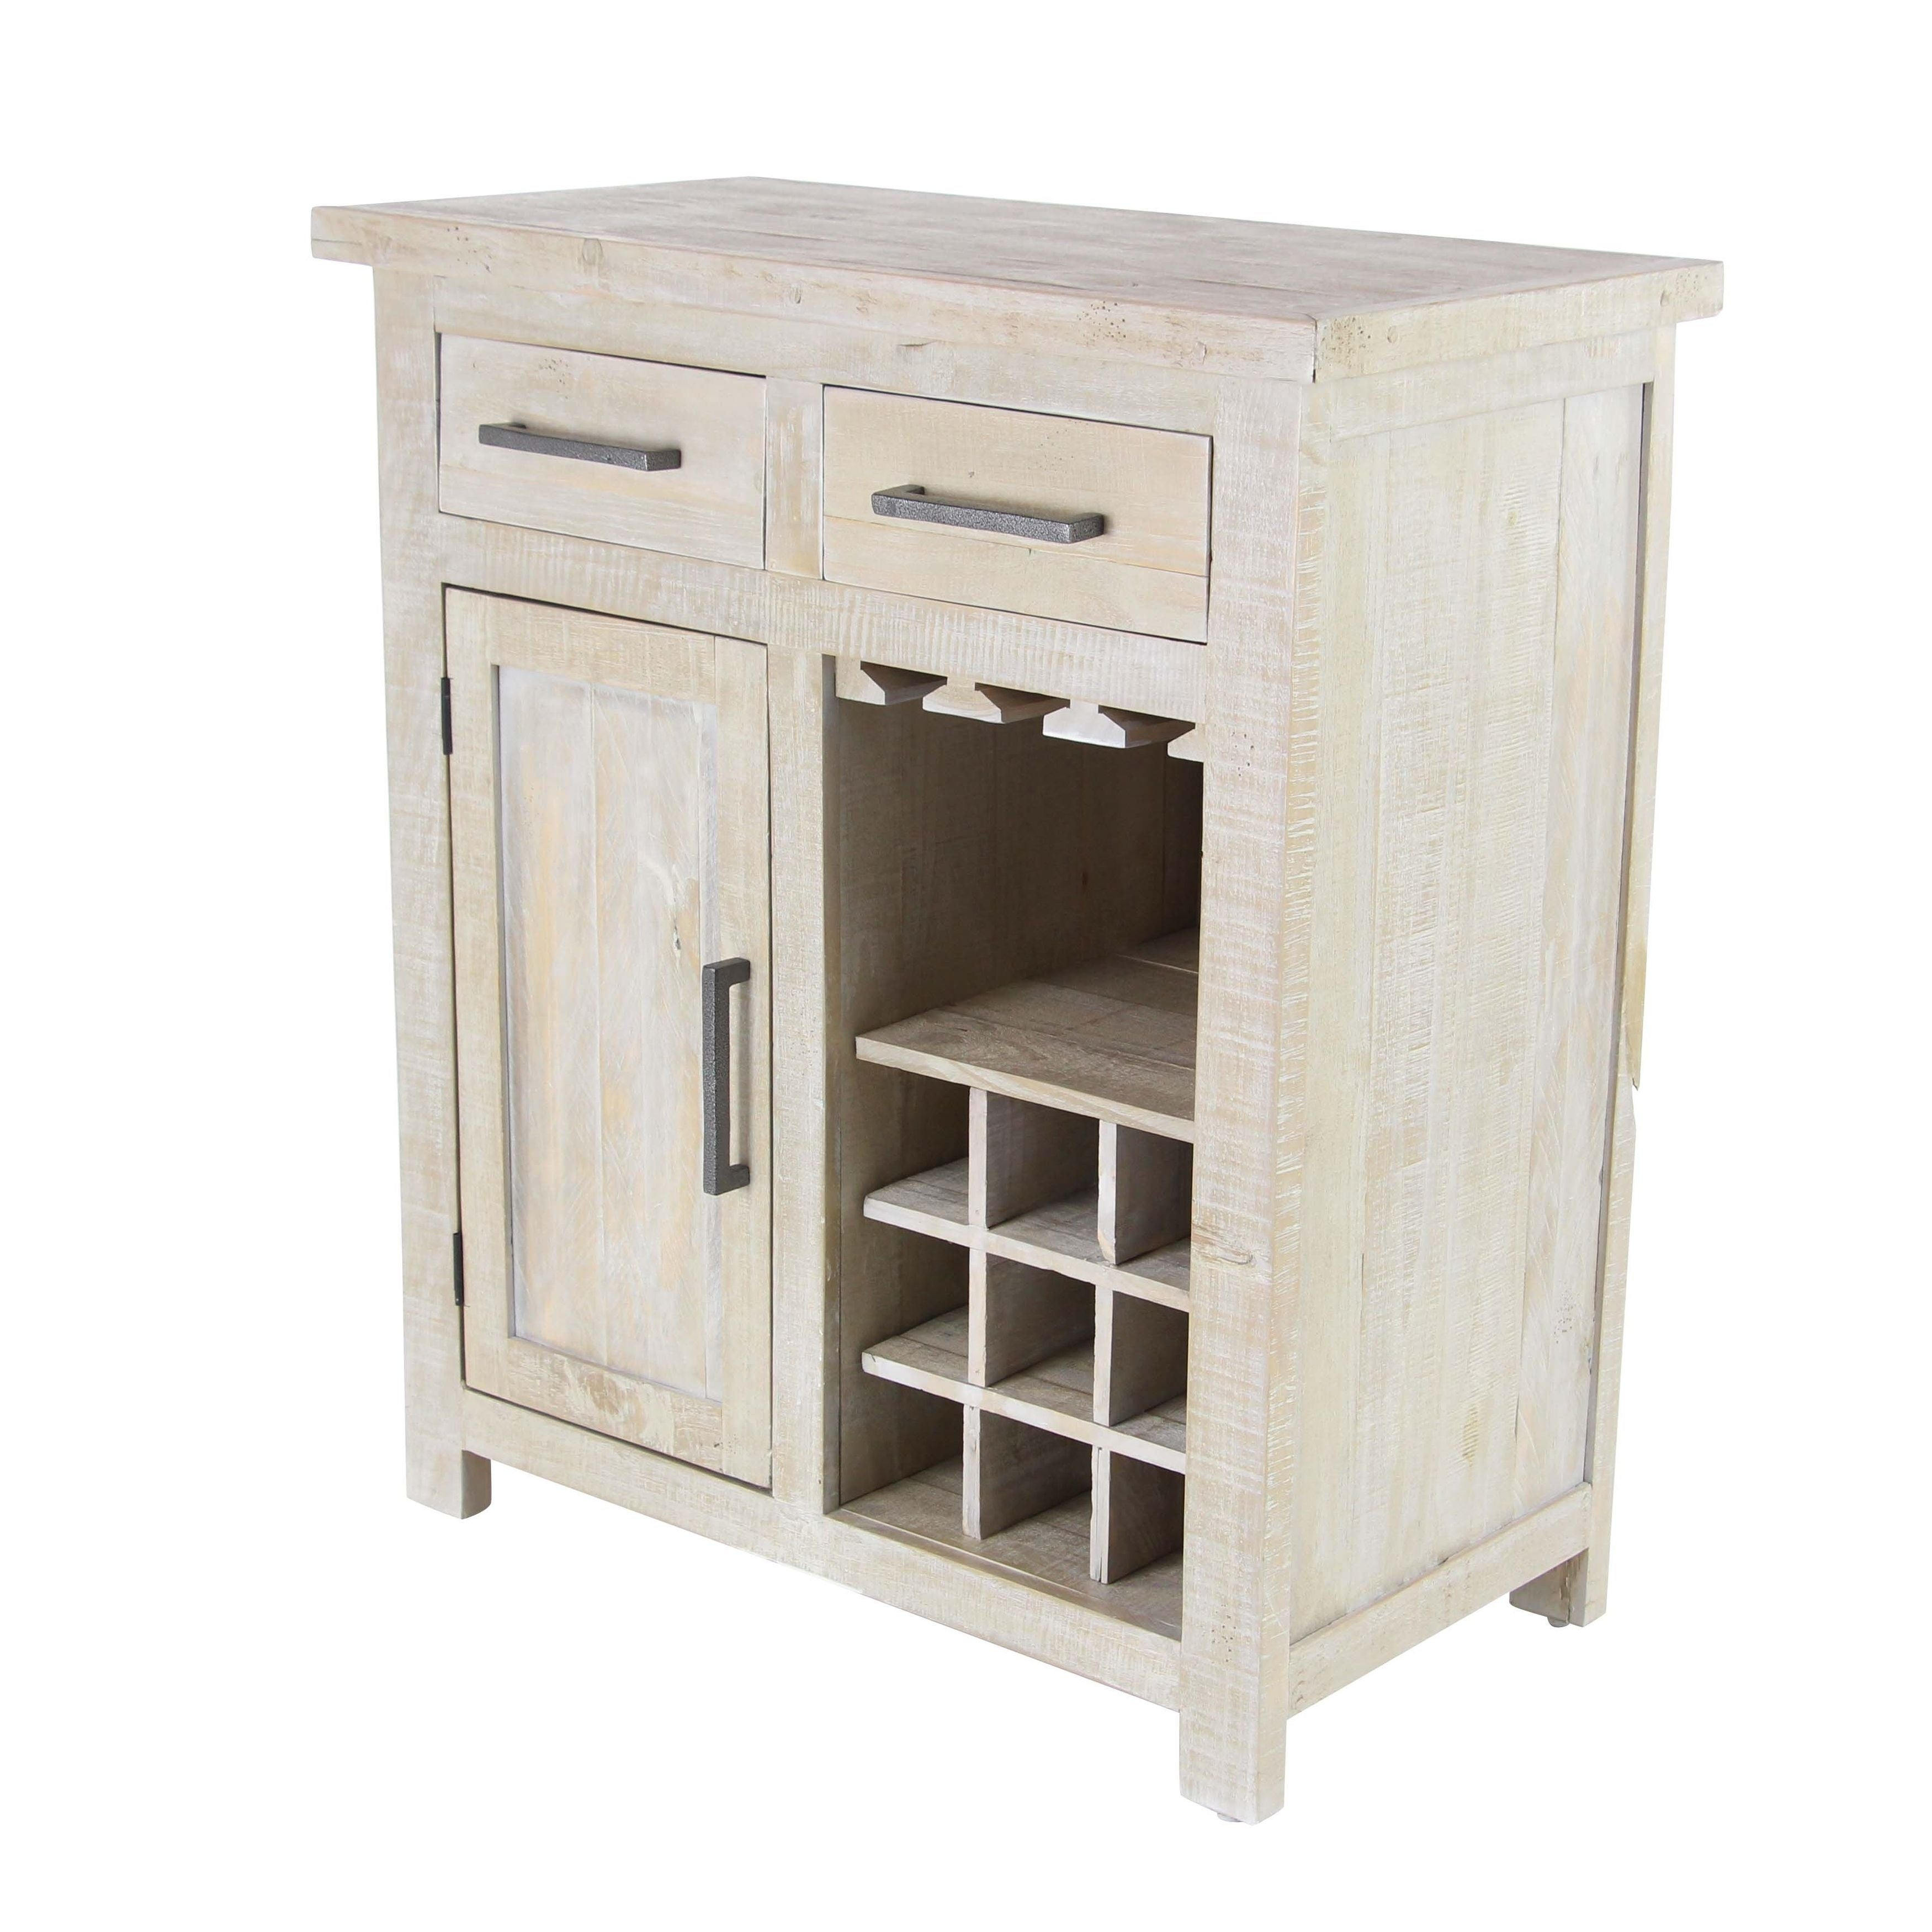 overstock rustic garden wood shipping wine white cabinet pine studio and today home product with bottle rack drawers free